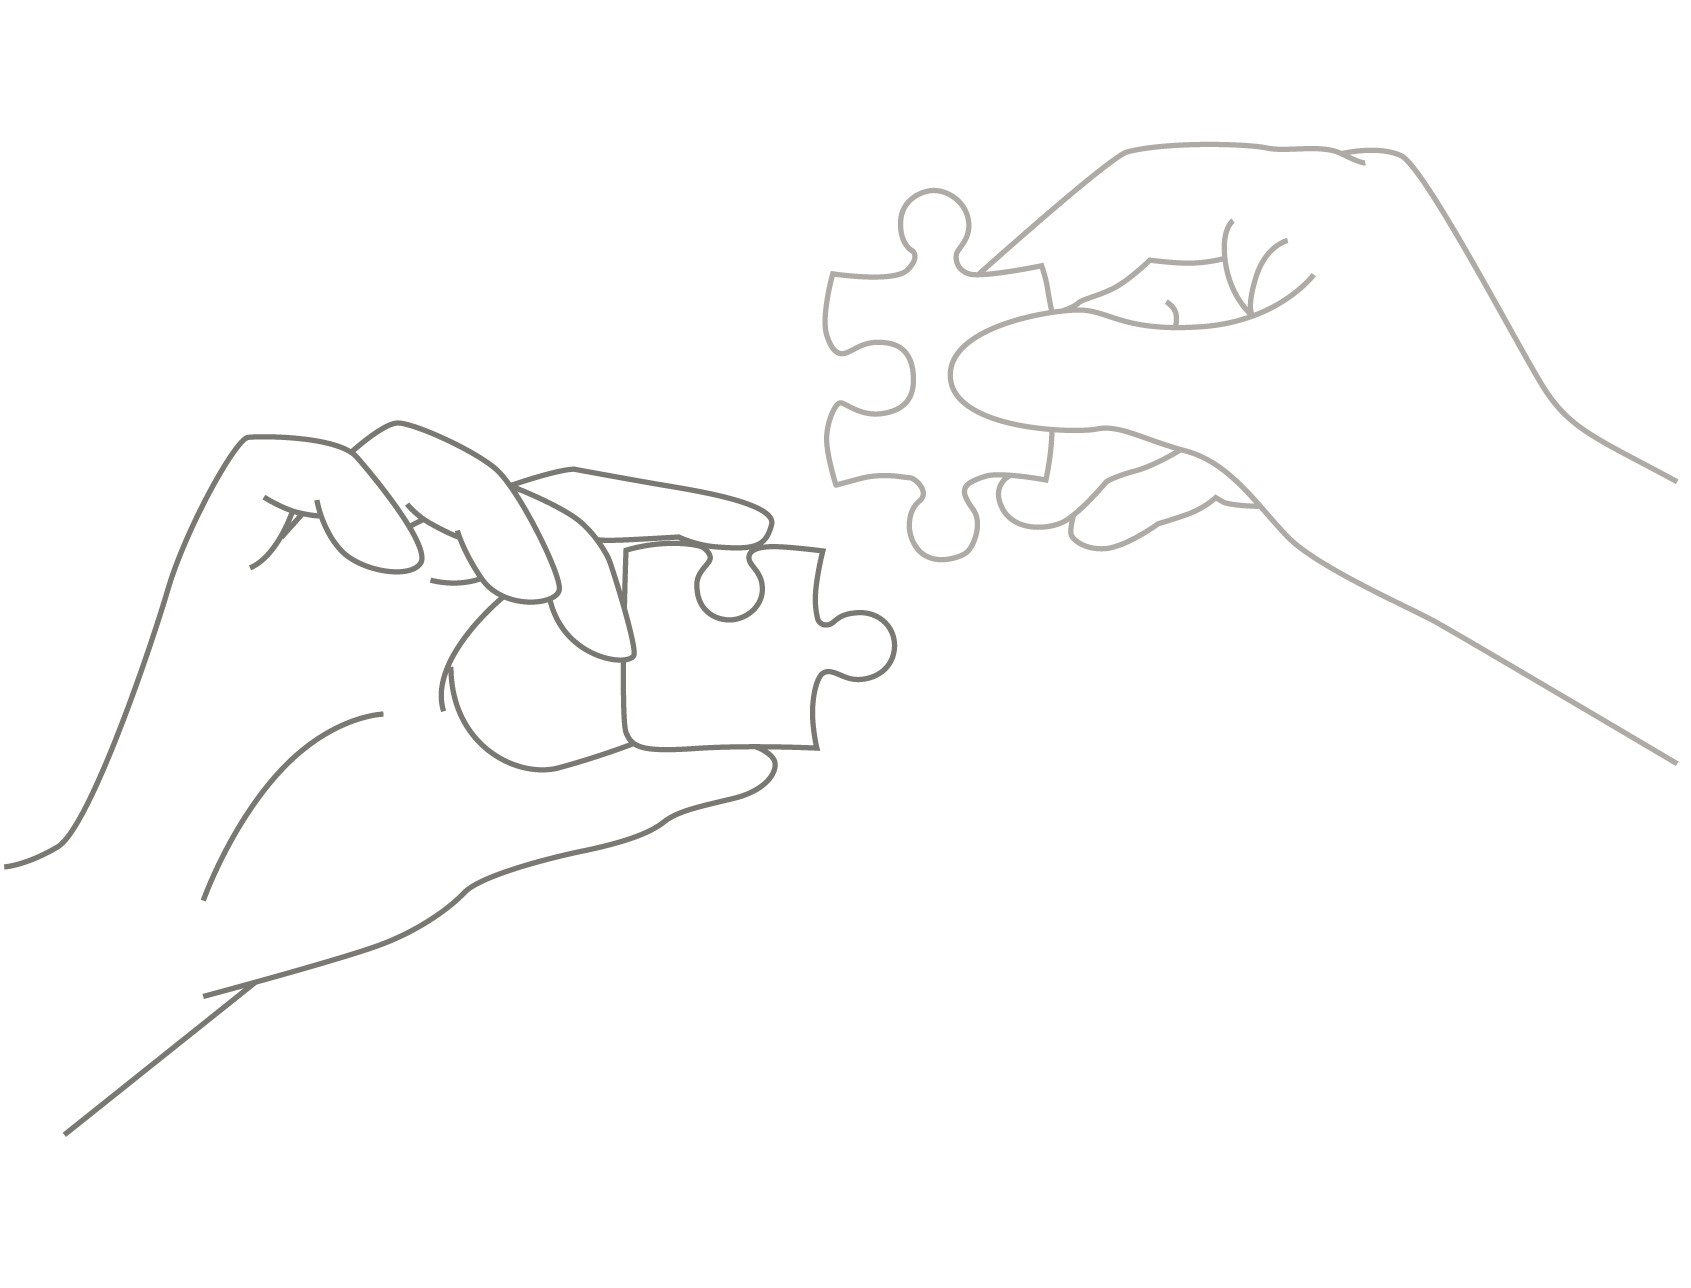 Two hands coming together each holding a puzzle piece that connects to the other